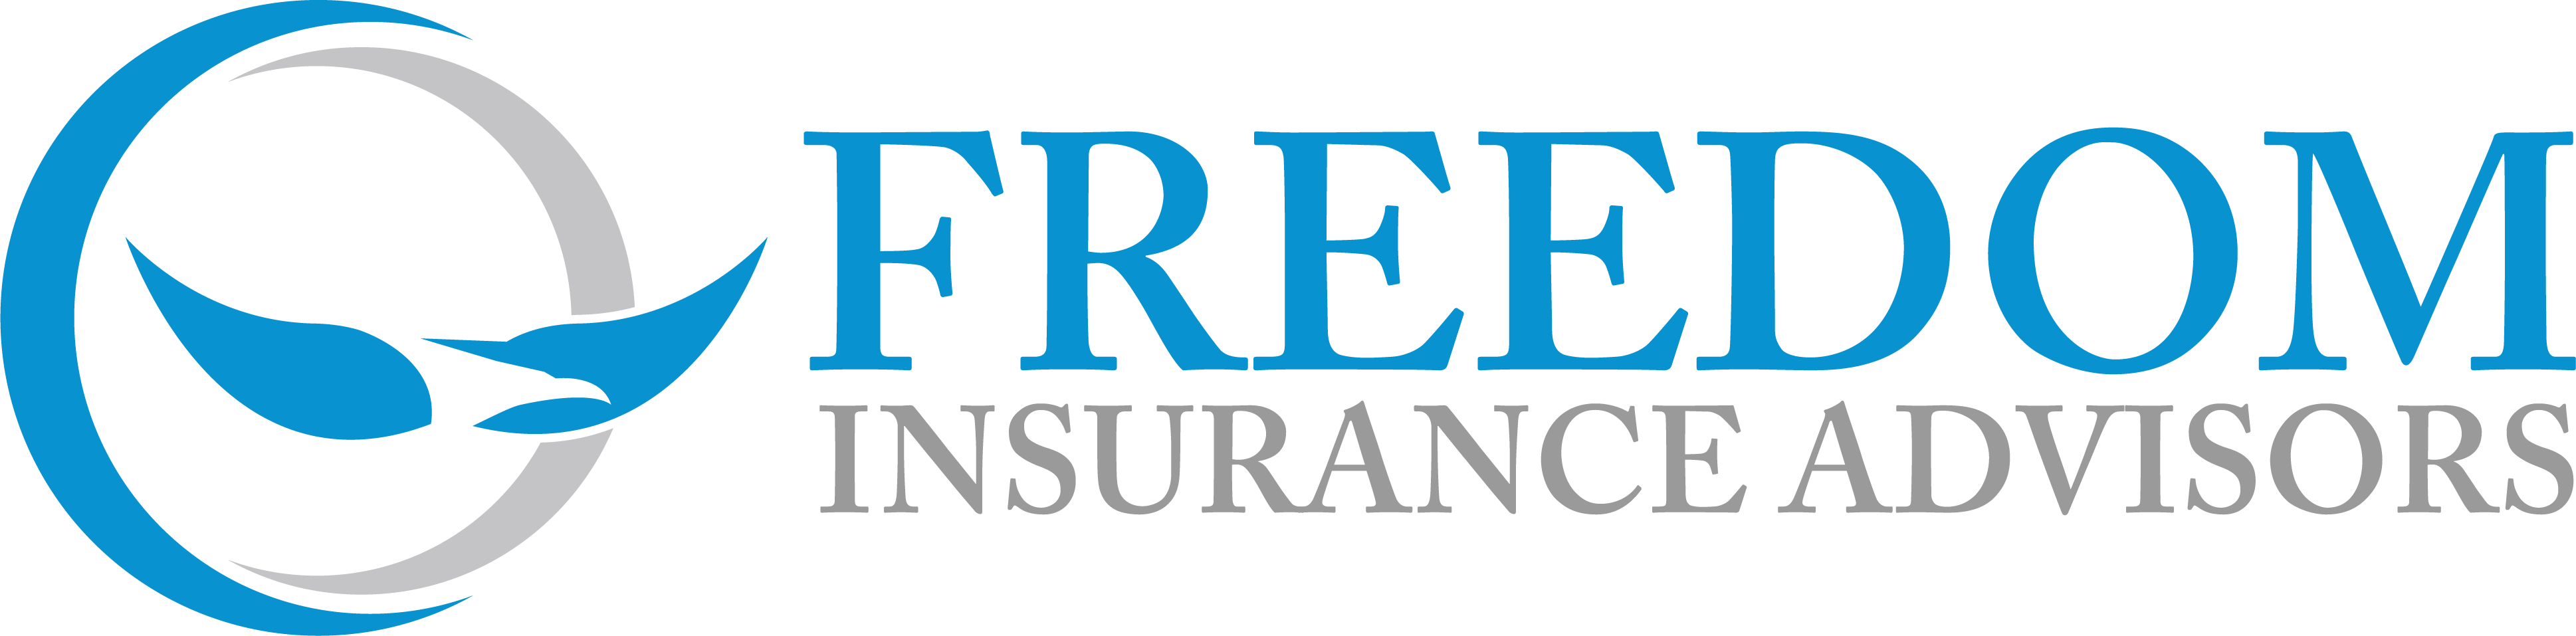 Freedom Insurance Advisors